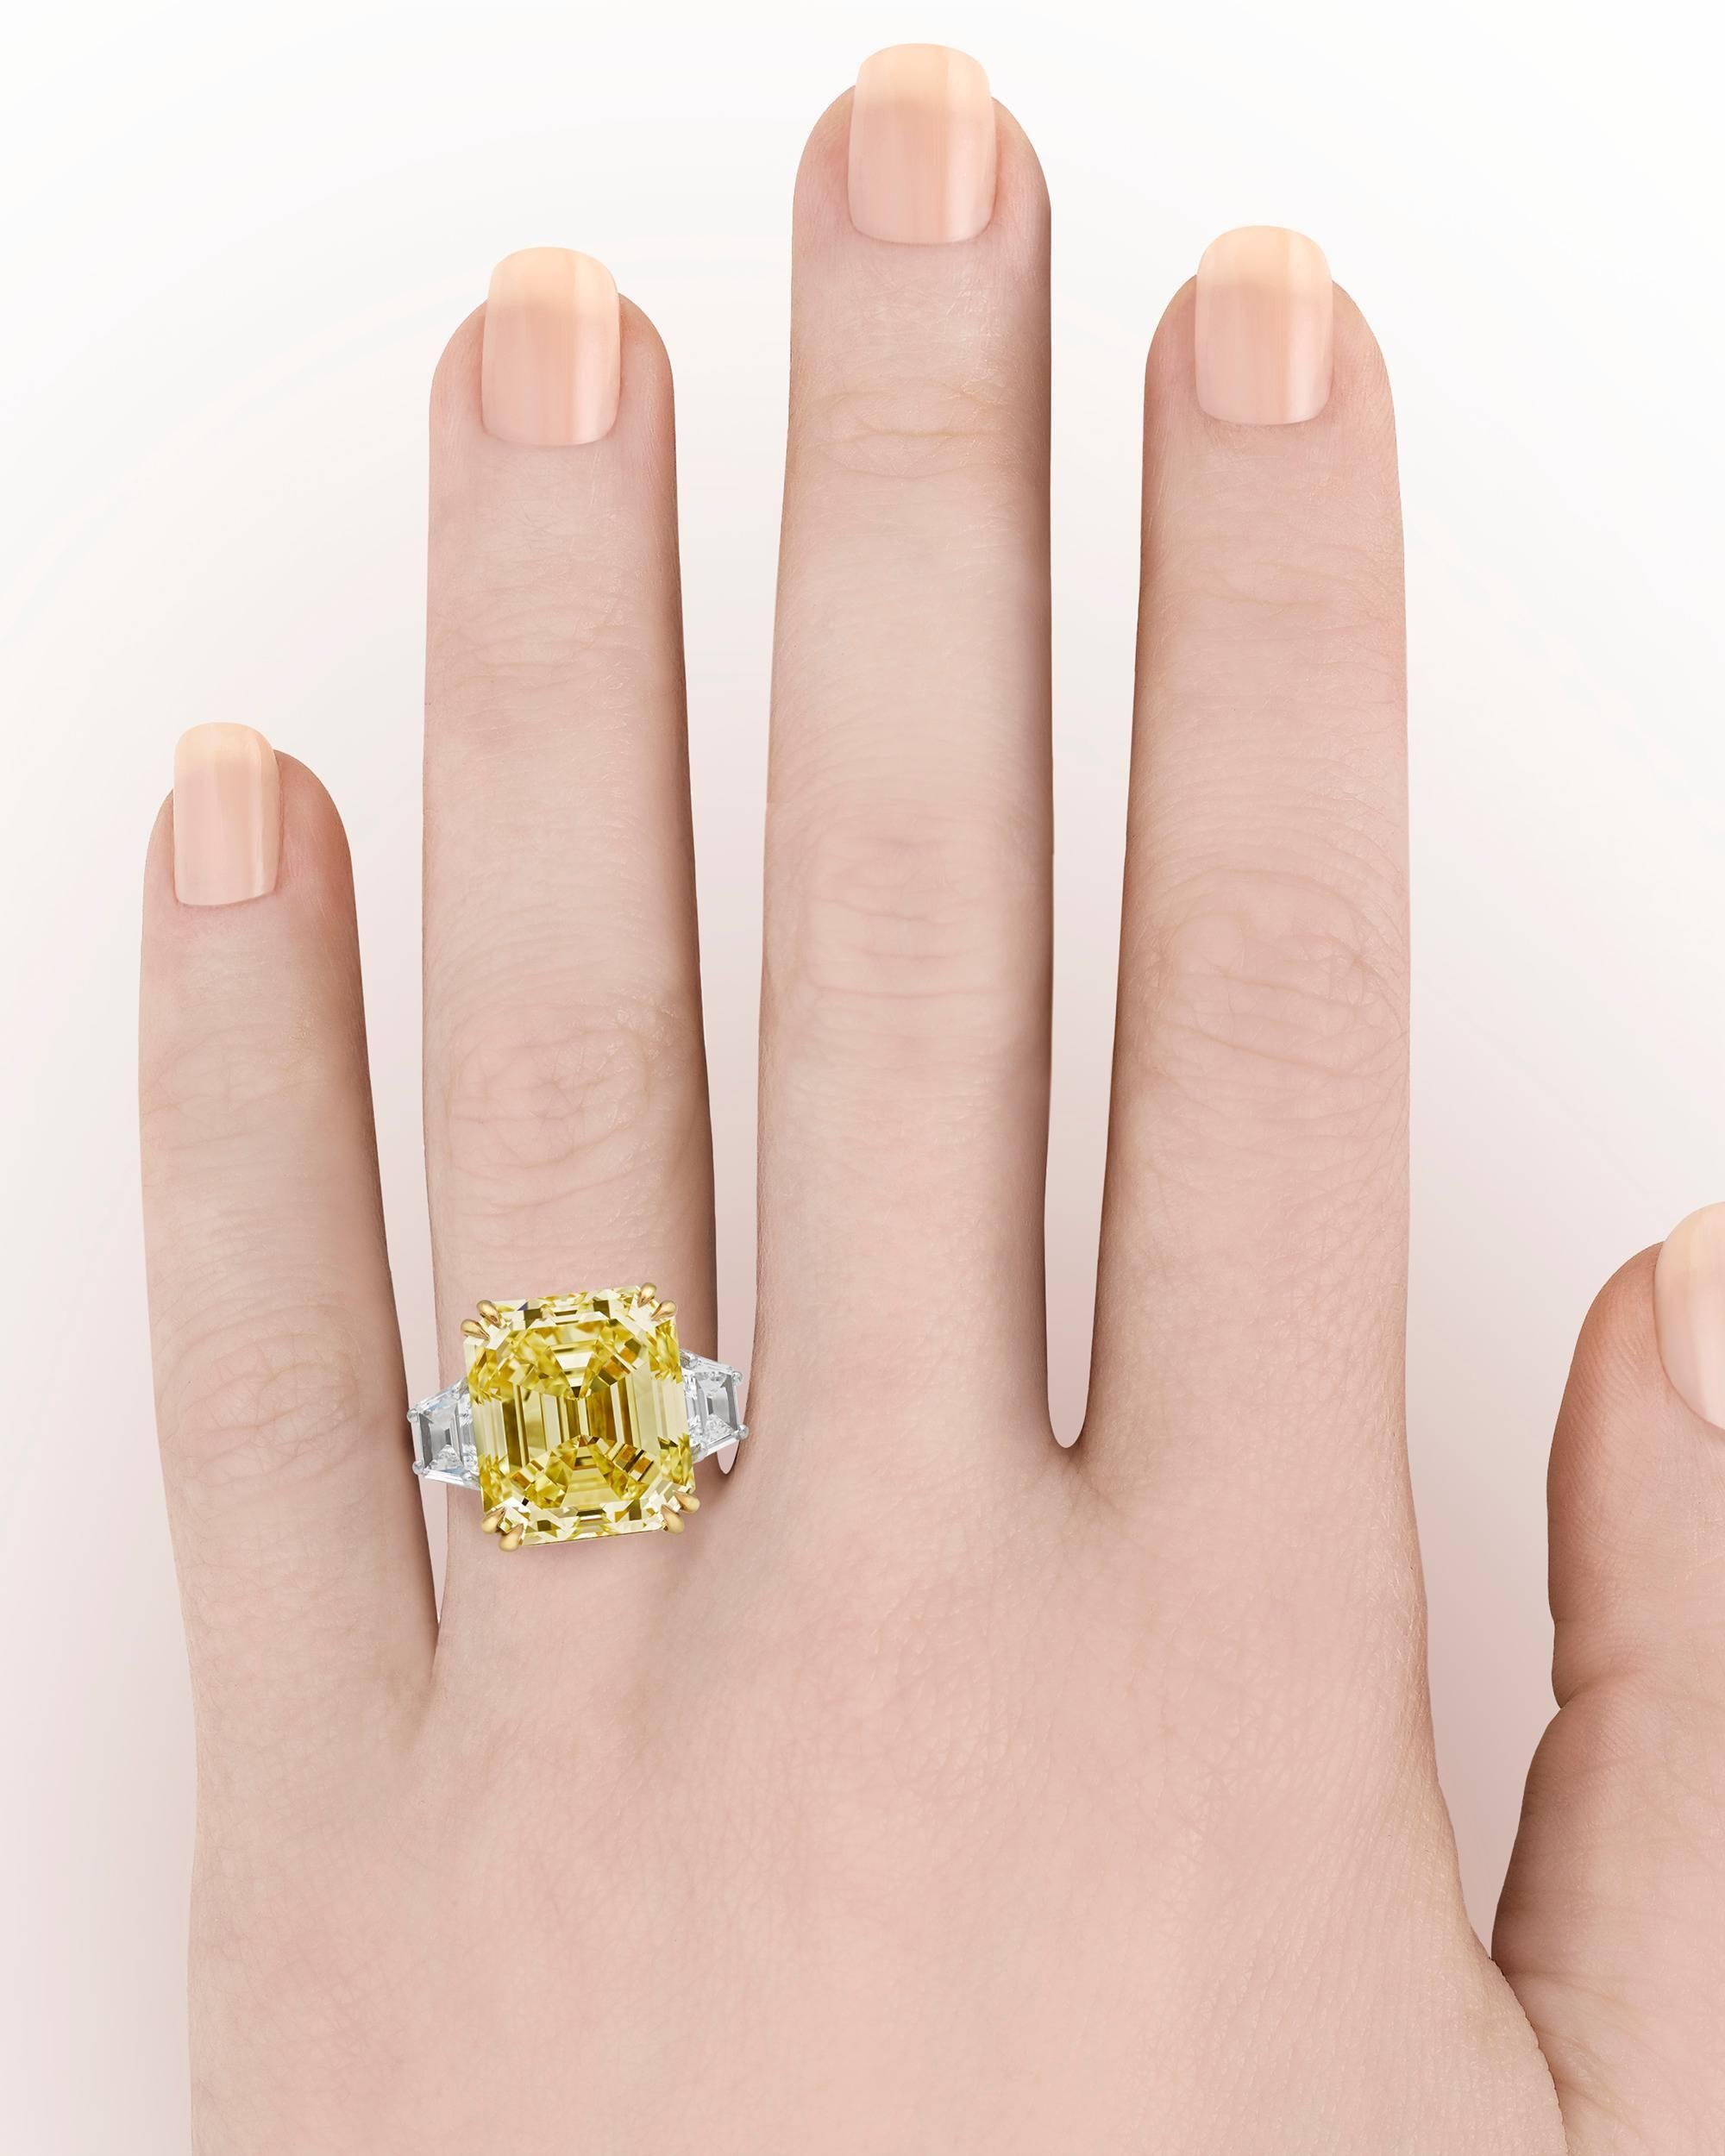 Fancy Yellow Diamond Ring, 16.57 Carat For Sale at 1stdibs